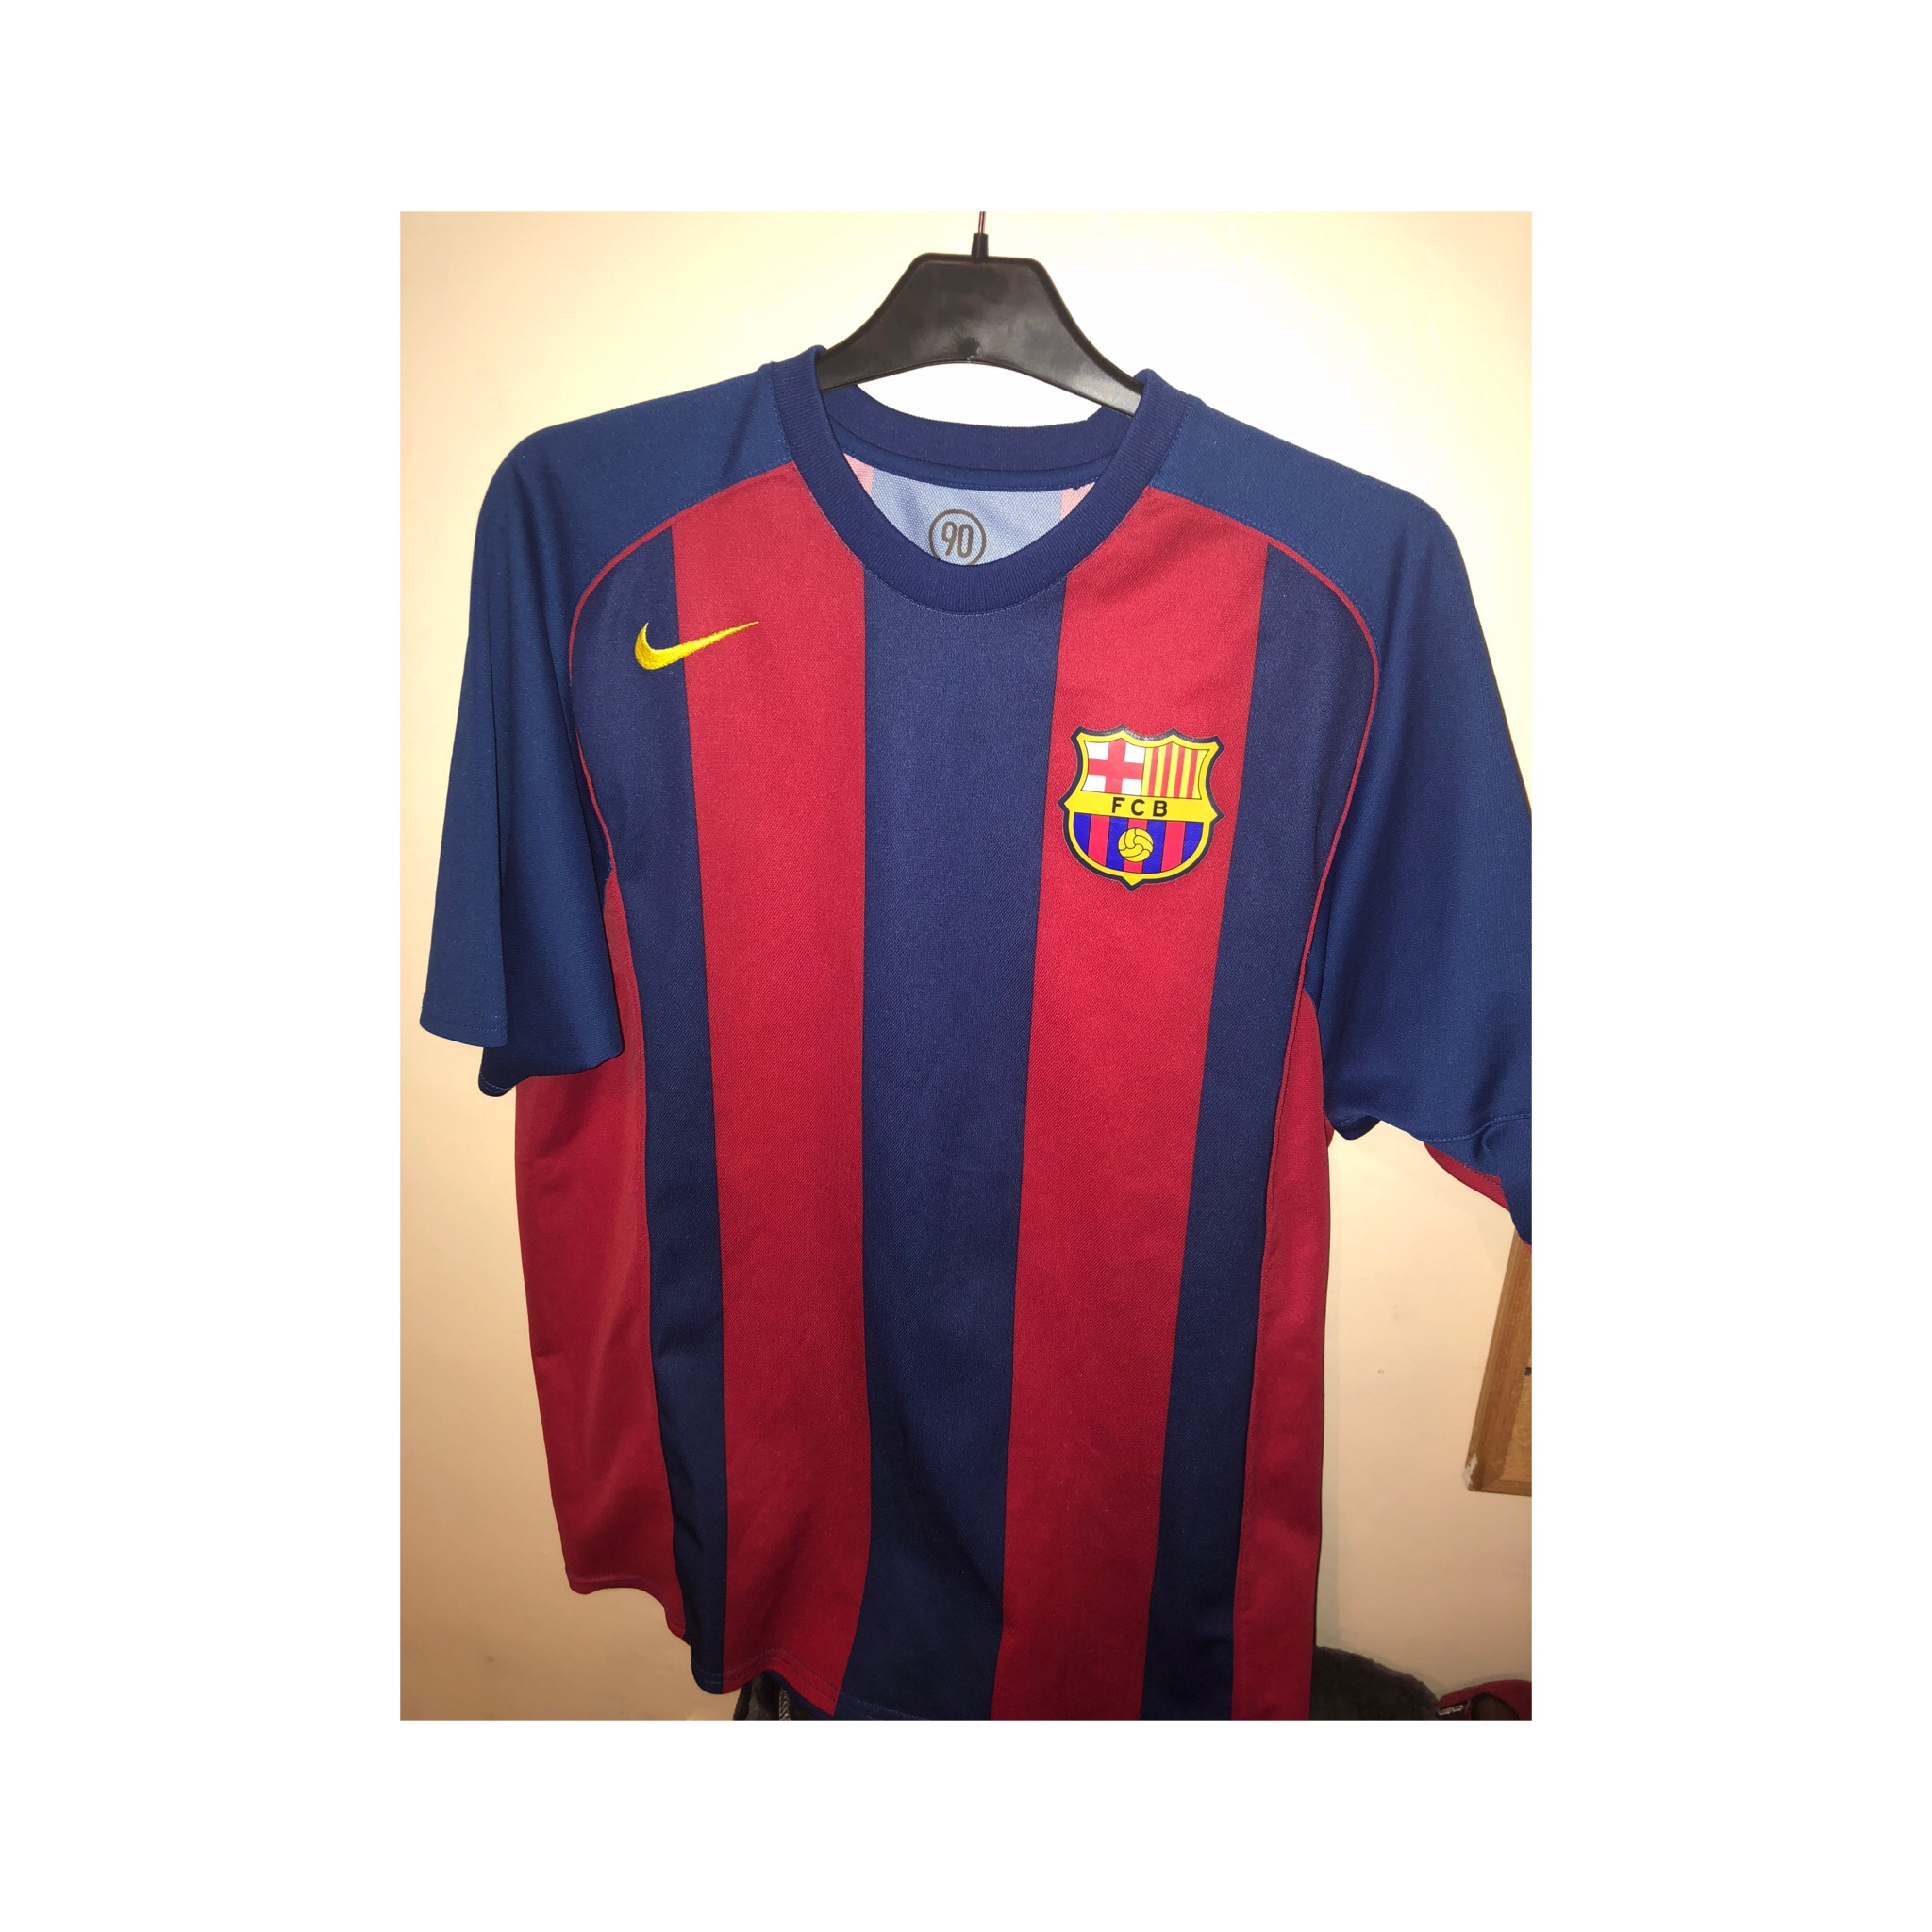 low priced 4bd8e 6f54c Classic Barcelona home kit from 2003/04. Perfect... - Depop